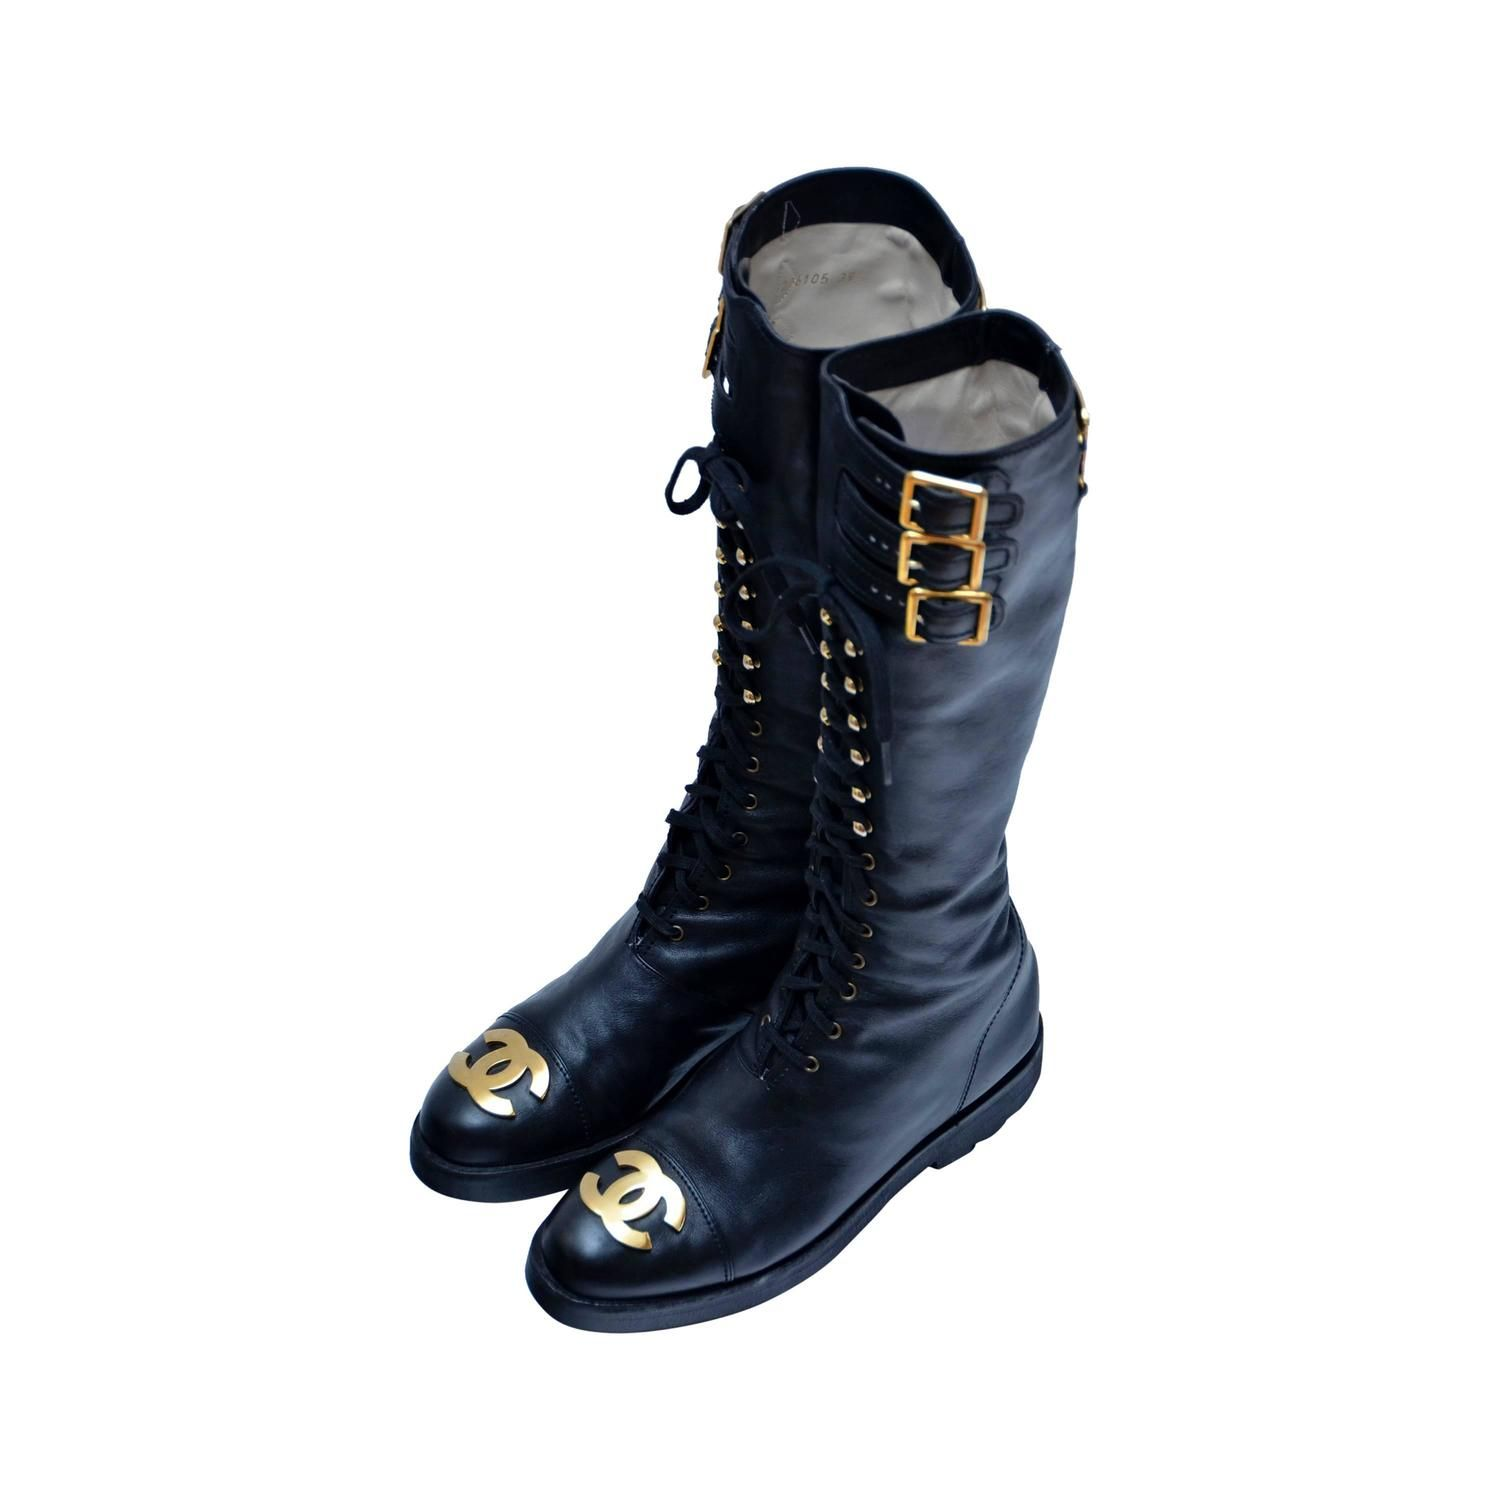 6ba2db9907b7 Iconic CHANEL Vintage Combat Leather Boots Imposible To Find 39.5 Mint